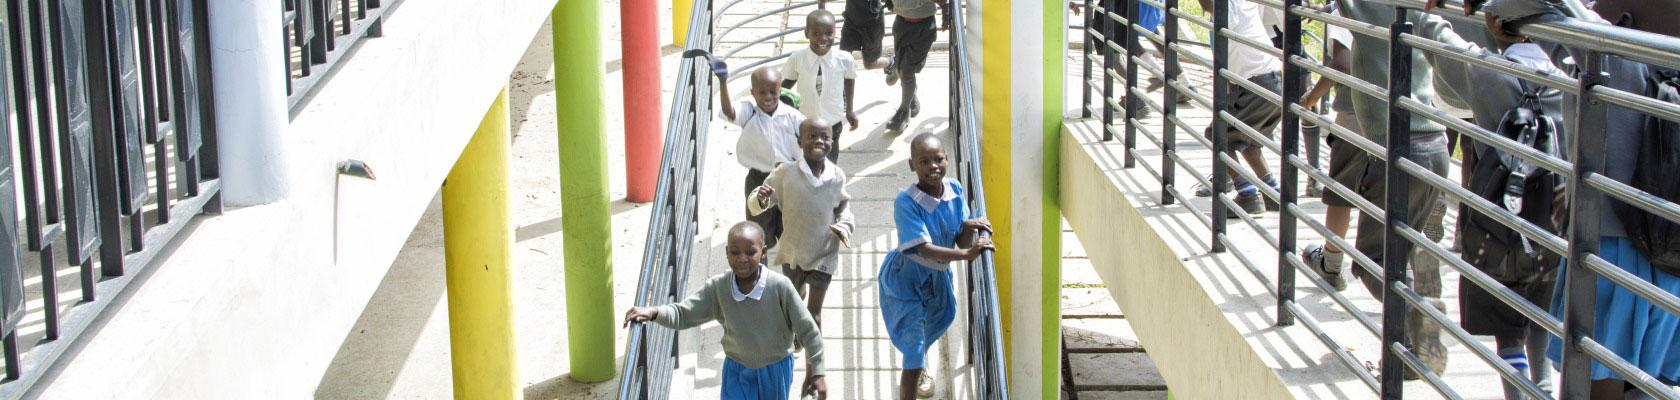 pupils, kids, primary school, Angira, Kenya, education